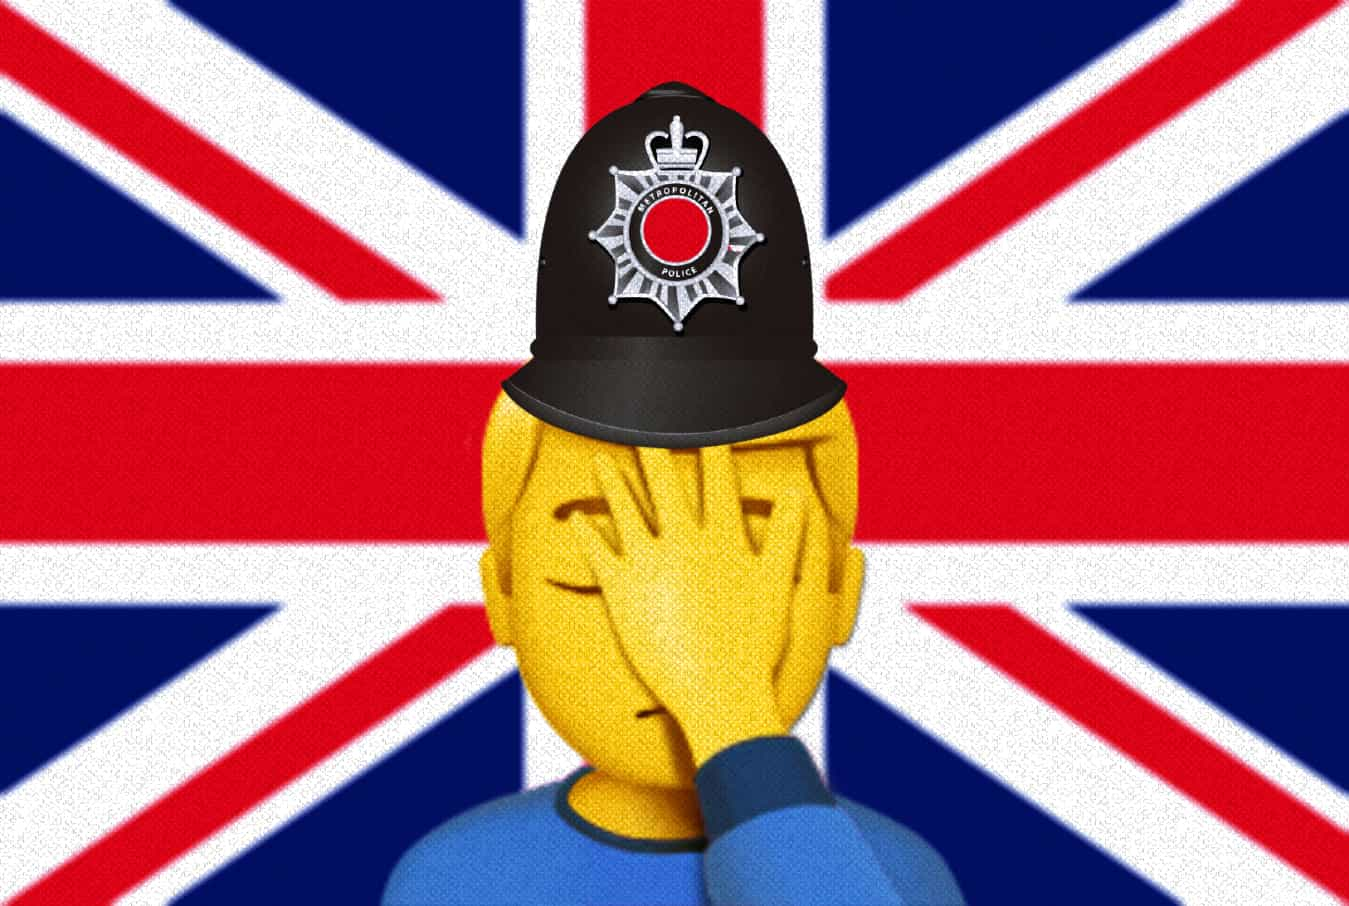 UK Police mistakenly deleted 150,000 arrest records in software glitch